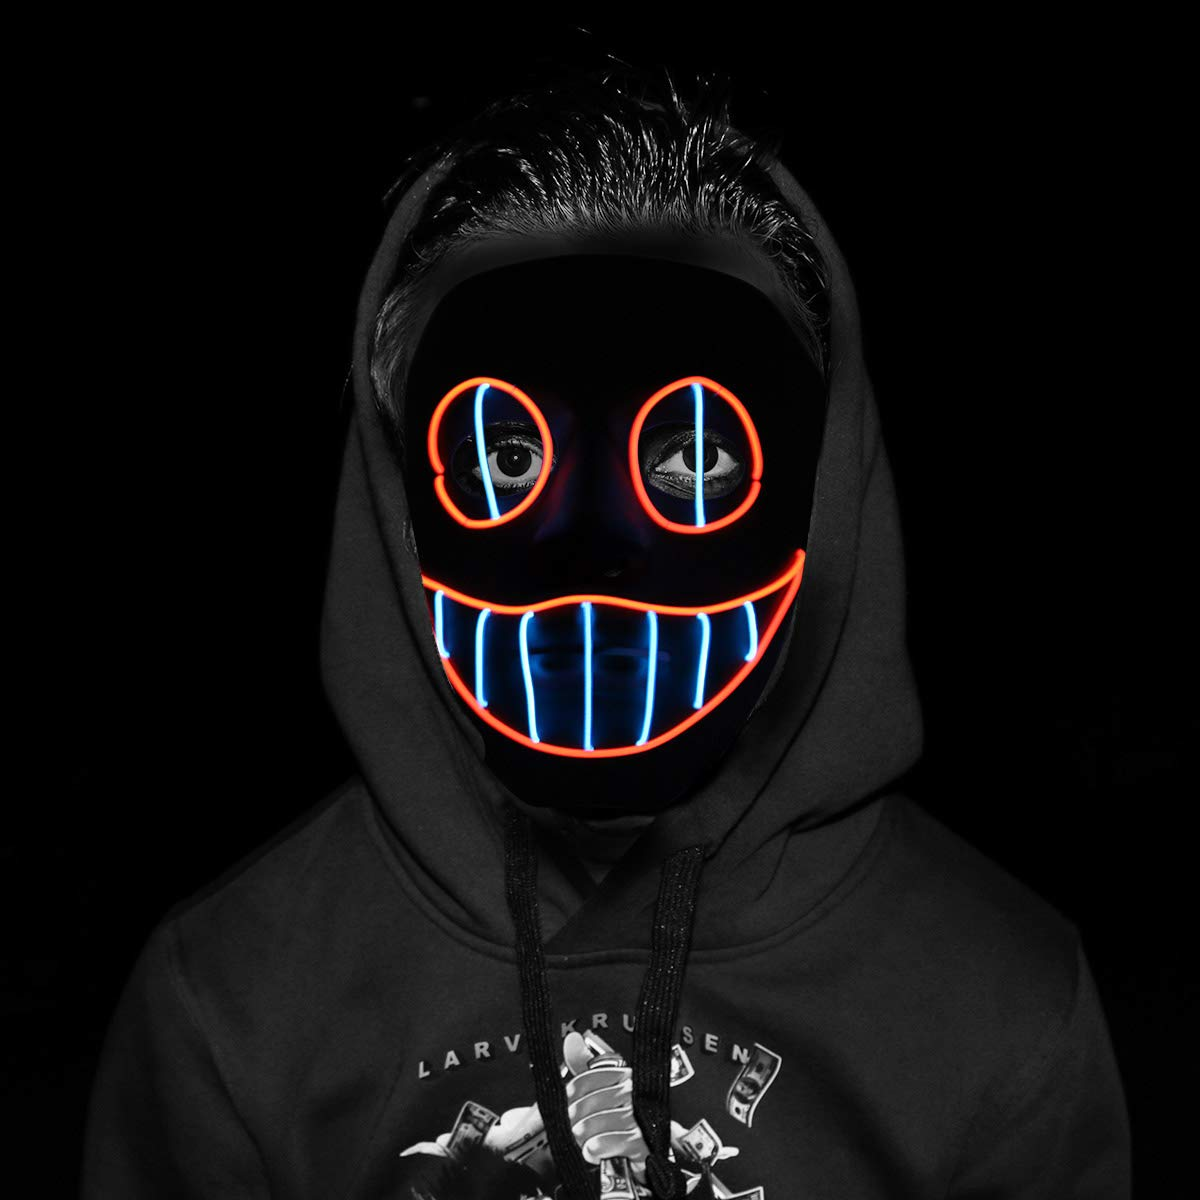 Disrerk LED Mask - Halloween Cosplay Lights up Mask for Halloween Festival Party (A) by Disrerk